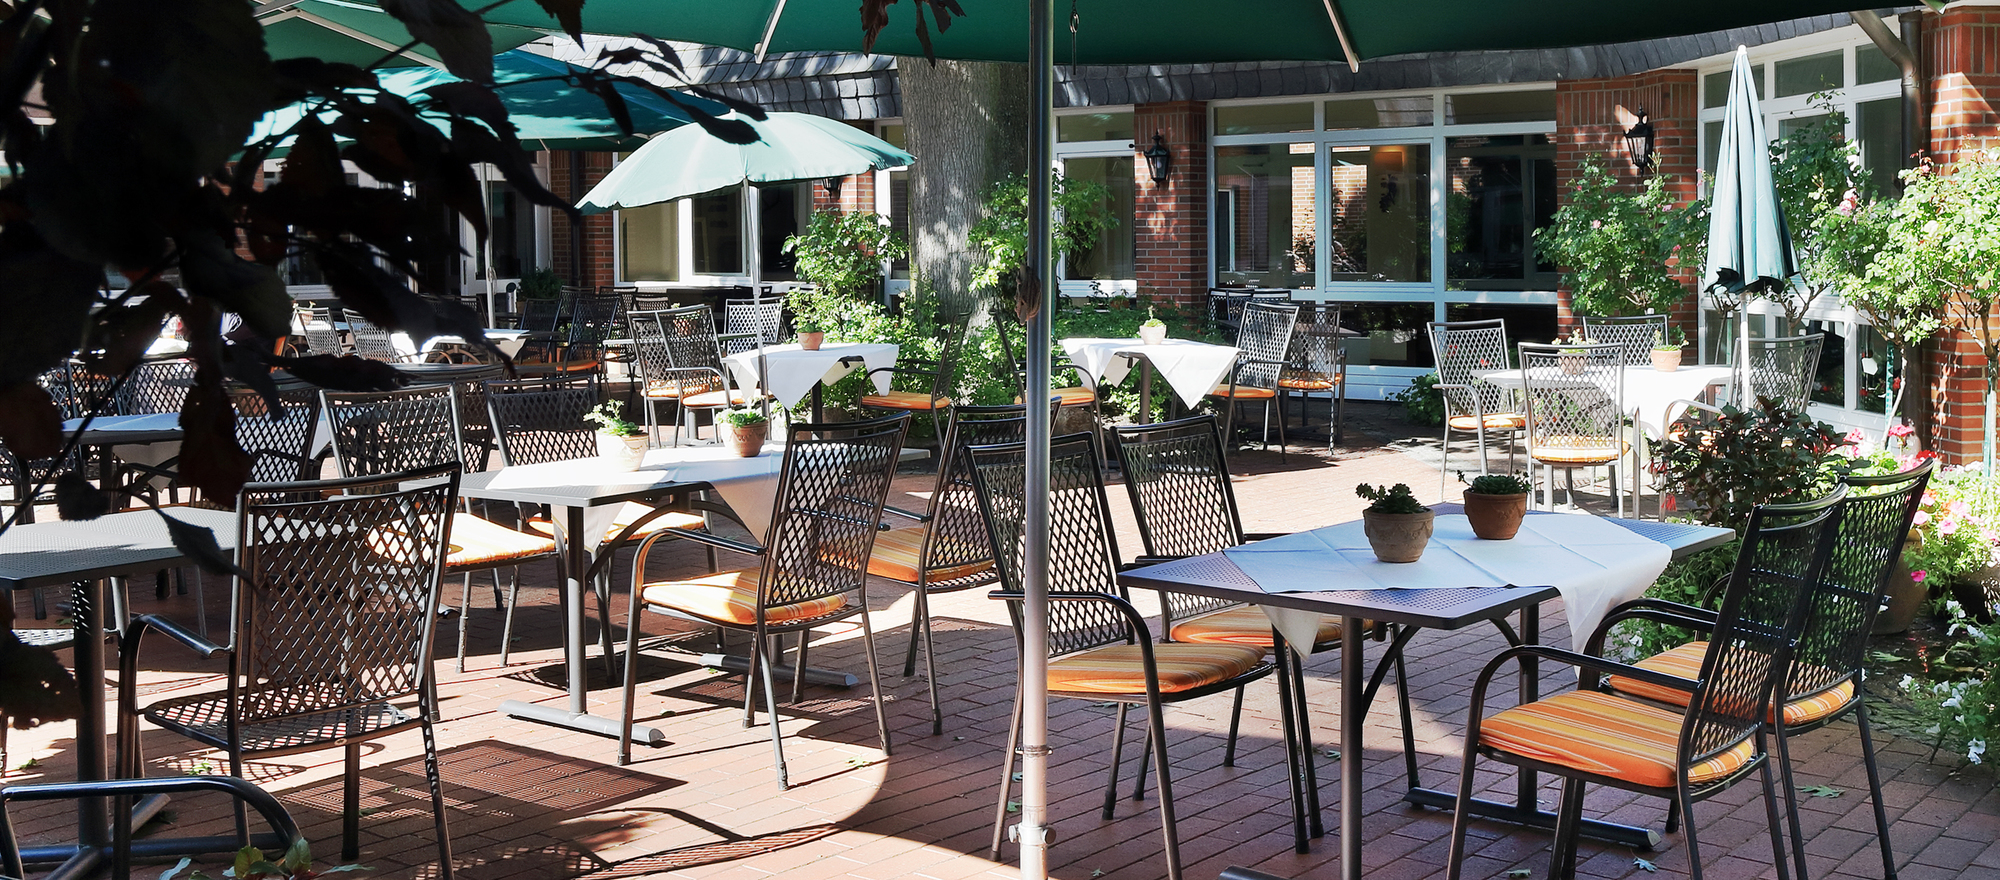 Garden restaurant with sunshades at the 4-star hotel Ringhotel Sellhorn in Hanstedt